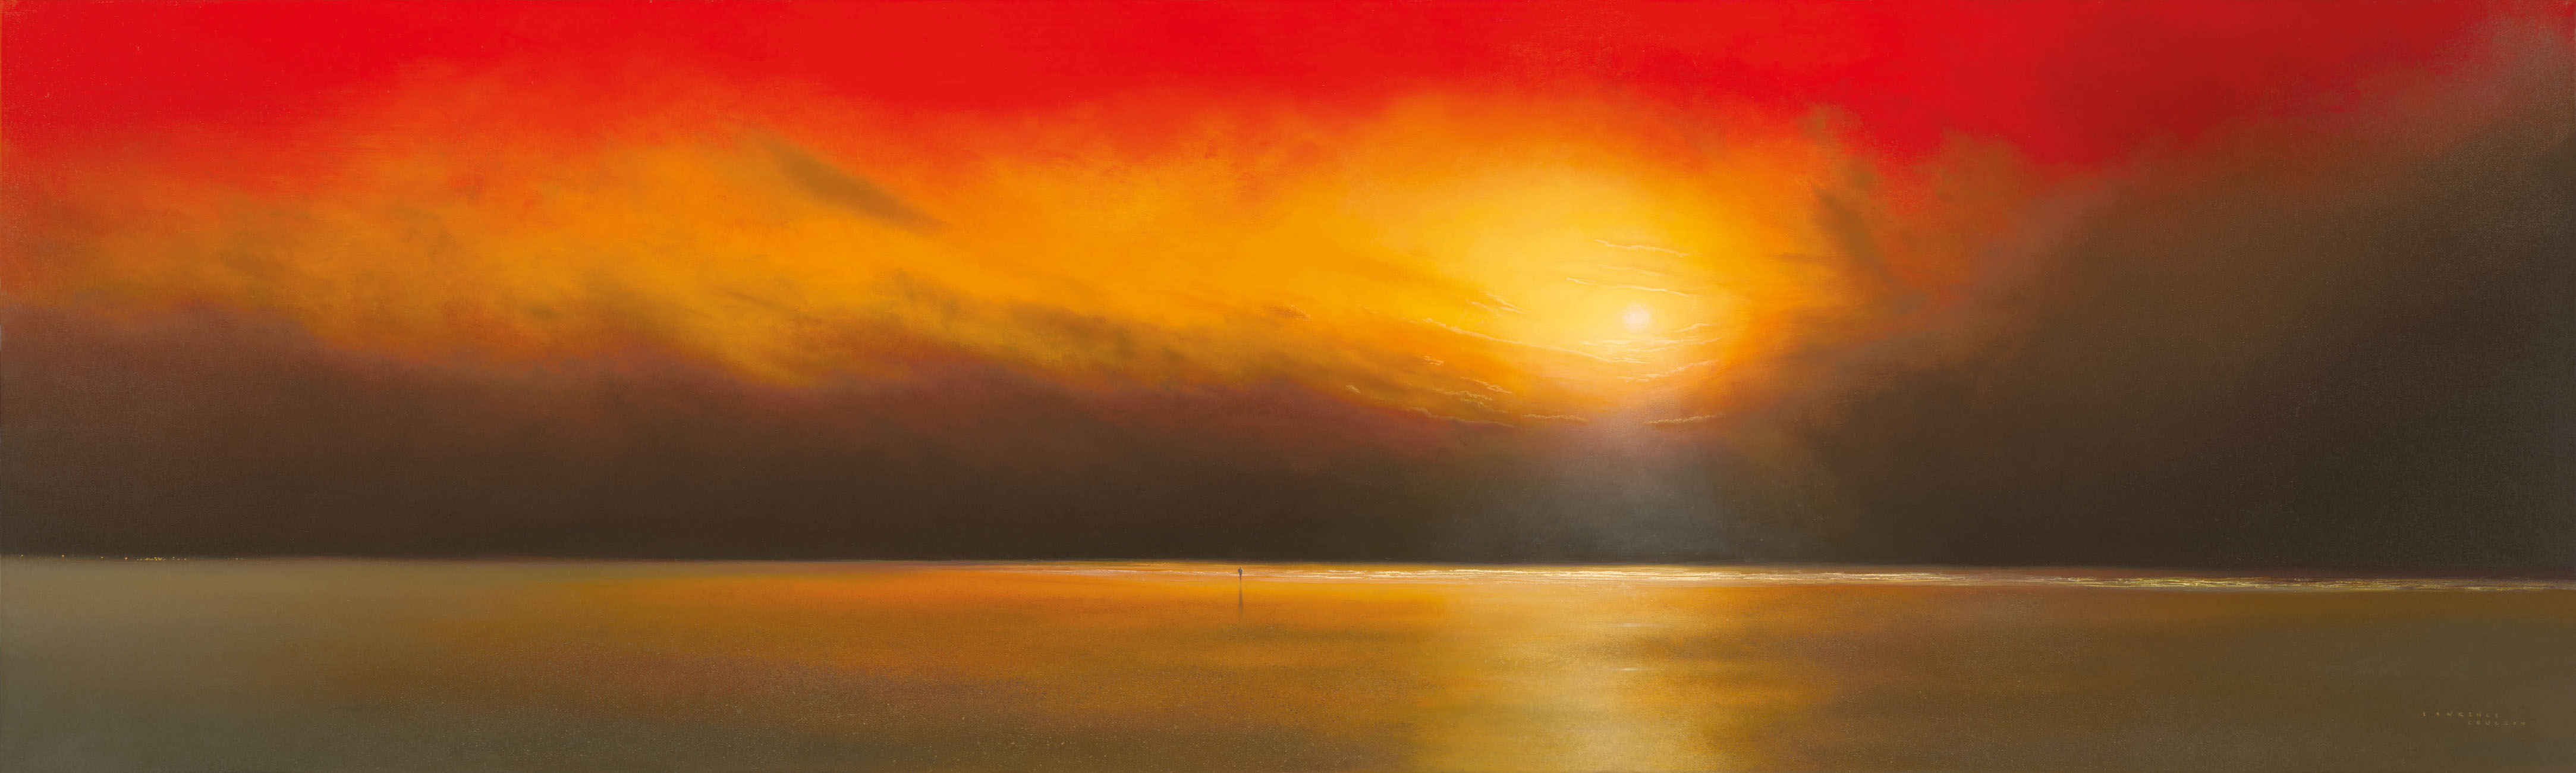 Underneath A Red Sky by Lawrence Coulson